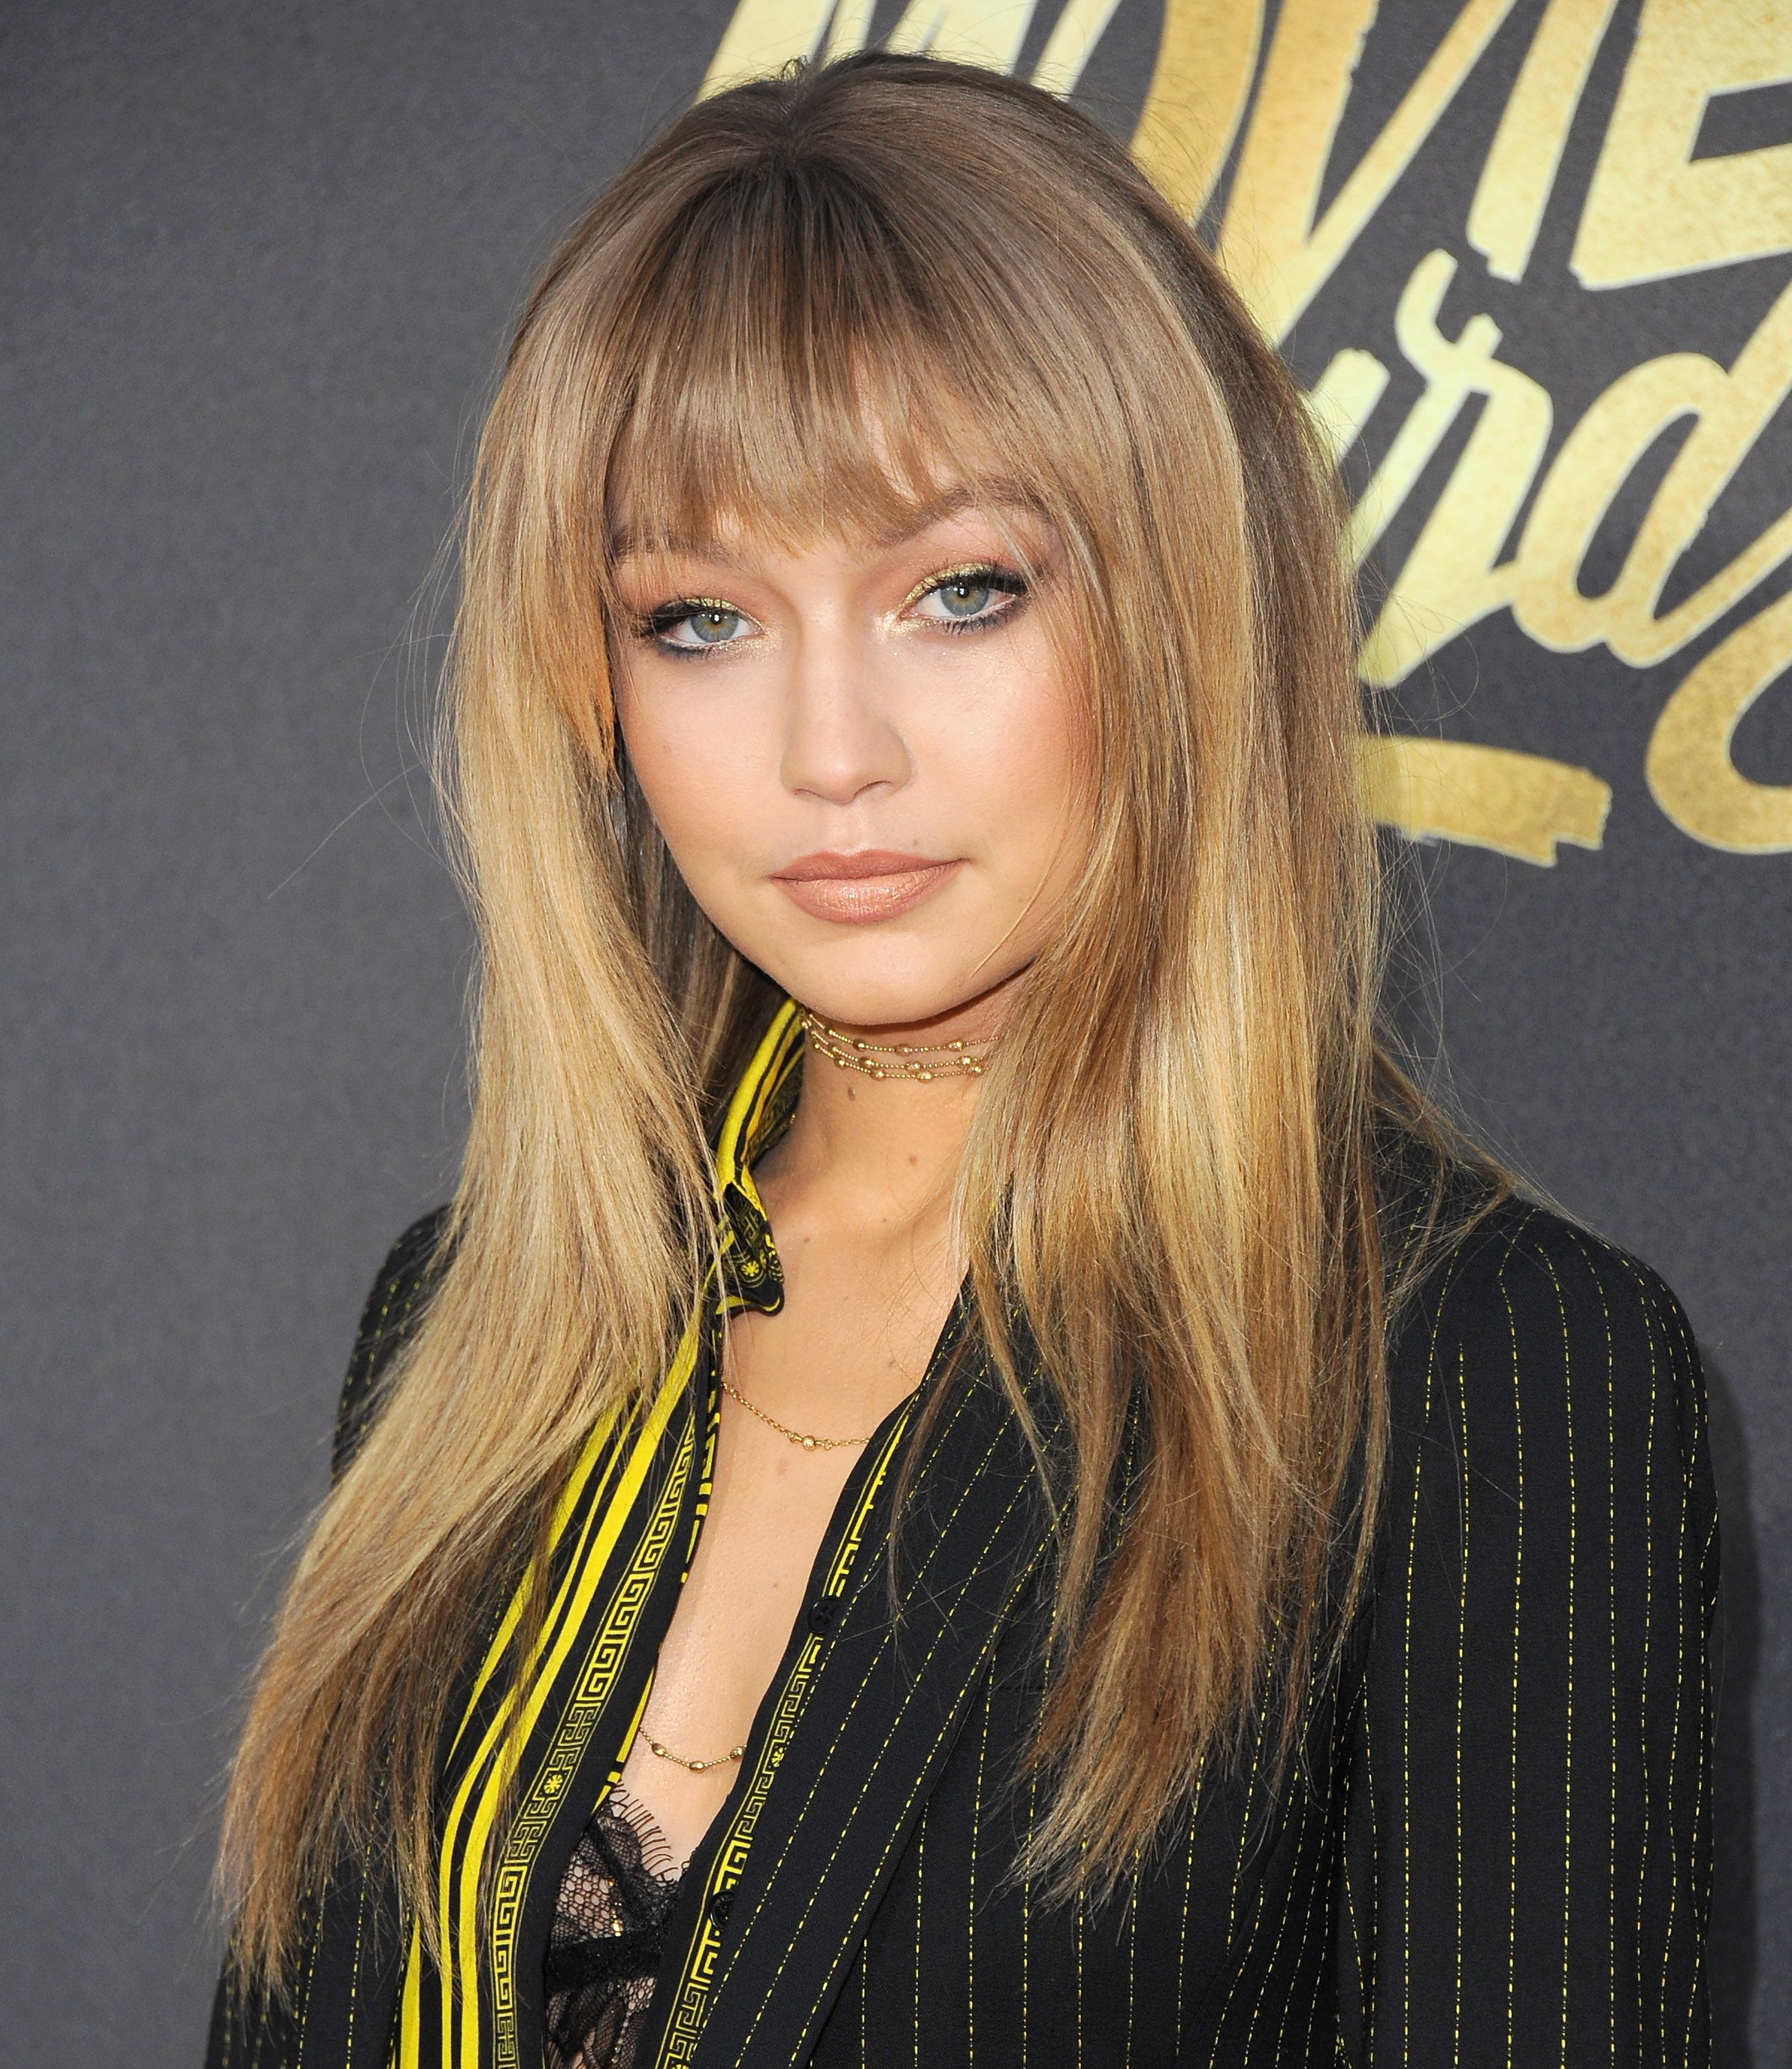 112 Hairstyles With Bangs You\'ll Want to Copy - Celebrity Haircuts ...